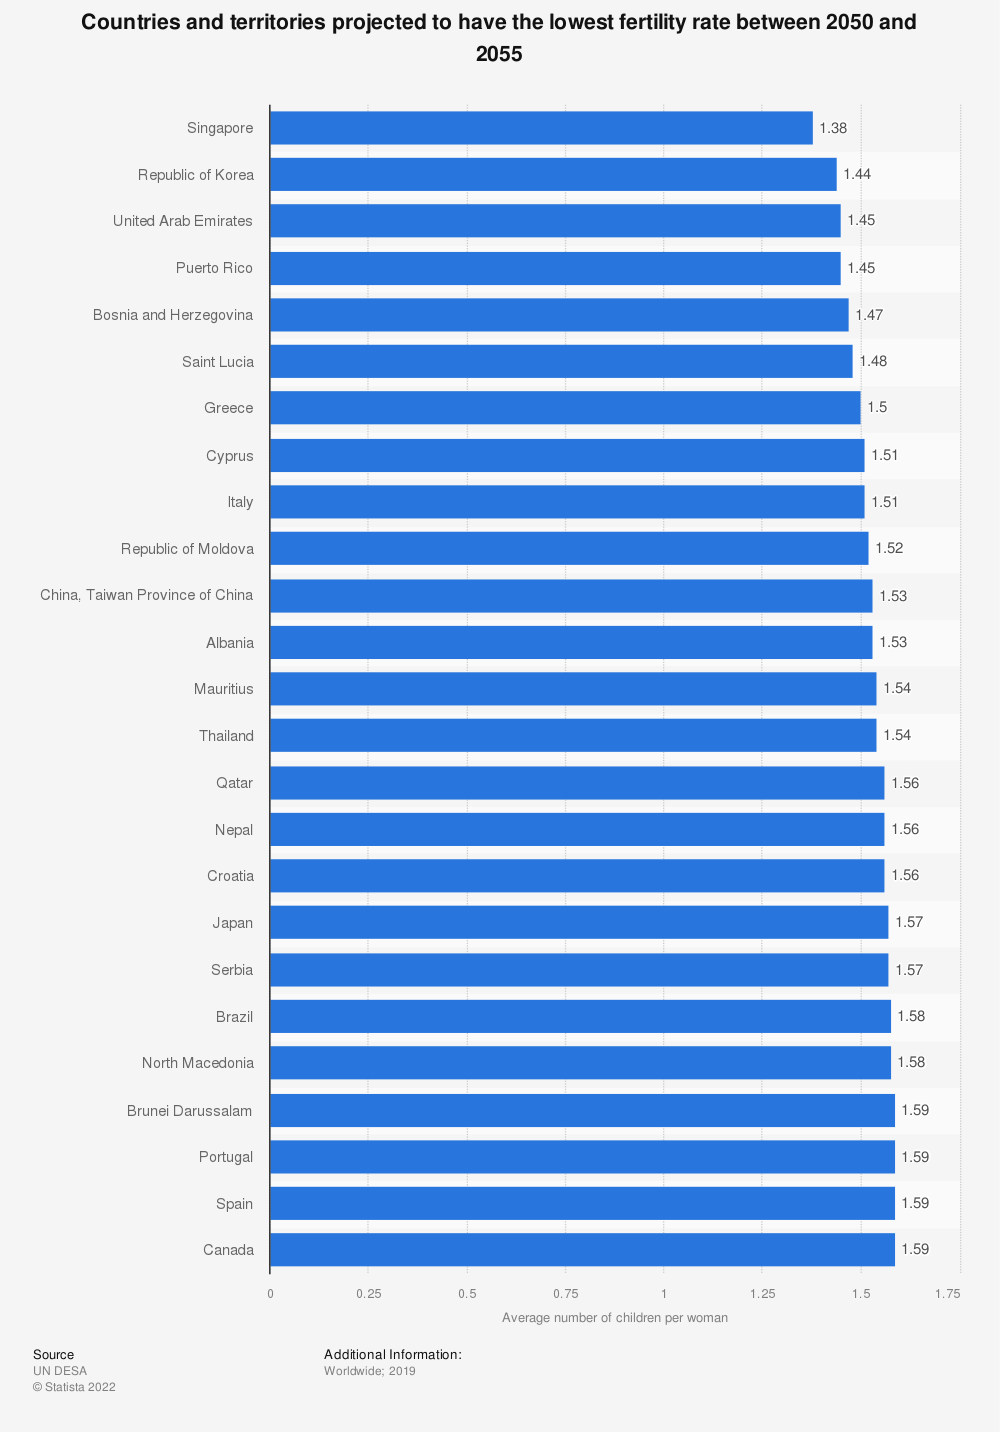 Statistic: Countries and territories projected to have the lowest fertility rate between 2050 and 2055  | Statista